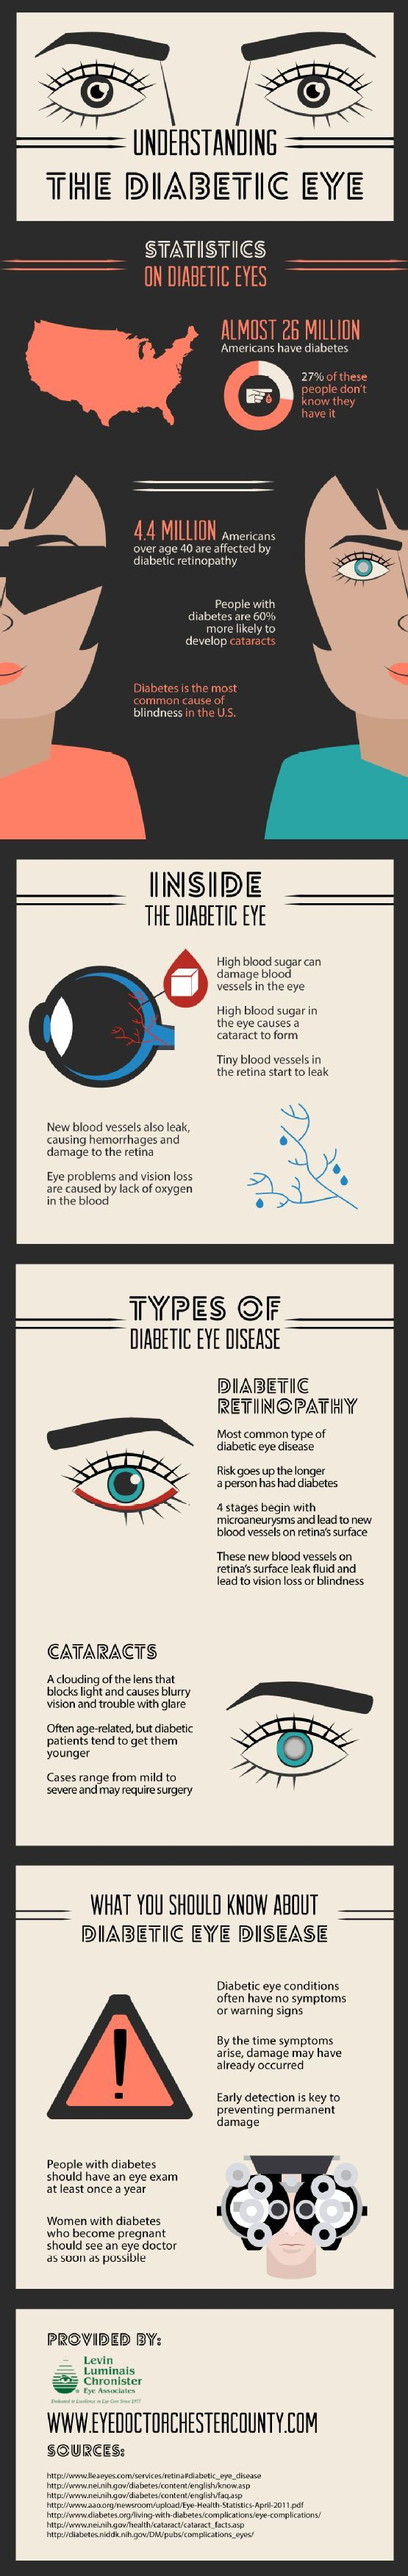 Diabetes Awareness Month - Eye disease (diabetic retinopathy): most people with diabetes will develop some form of eye disease (retinopathy) causing reduced vision or blindness. Consistently high levels of blood glucose, together with high blood pressure and high cholesterol, are the main causes of retinopathy. It can be managed through regular eye checks and keeping glucose and lipid levels at or close to normal.